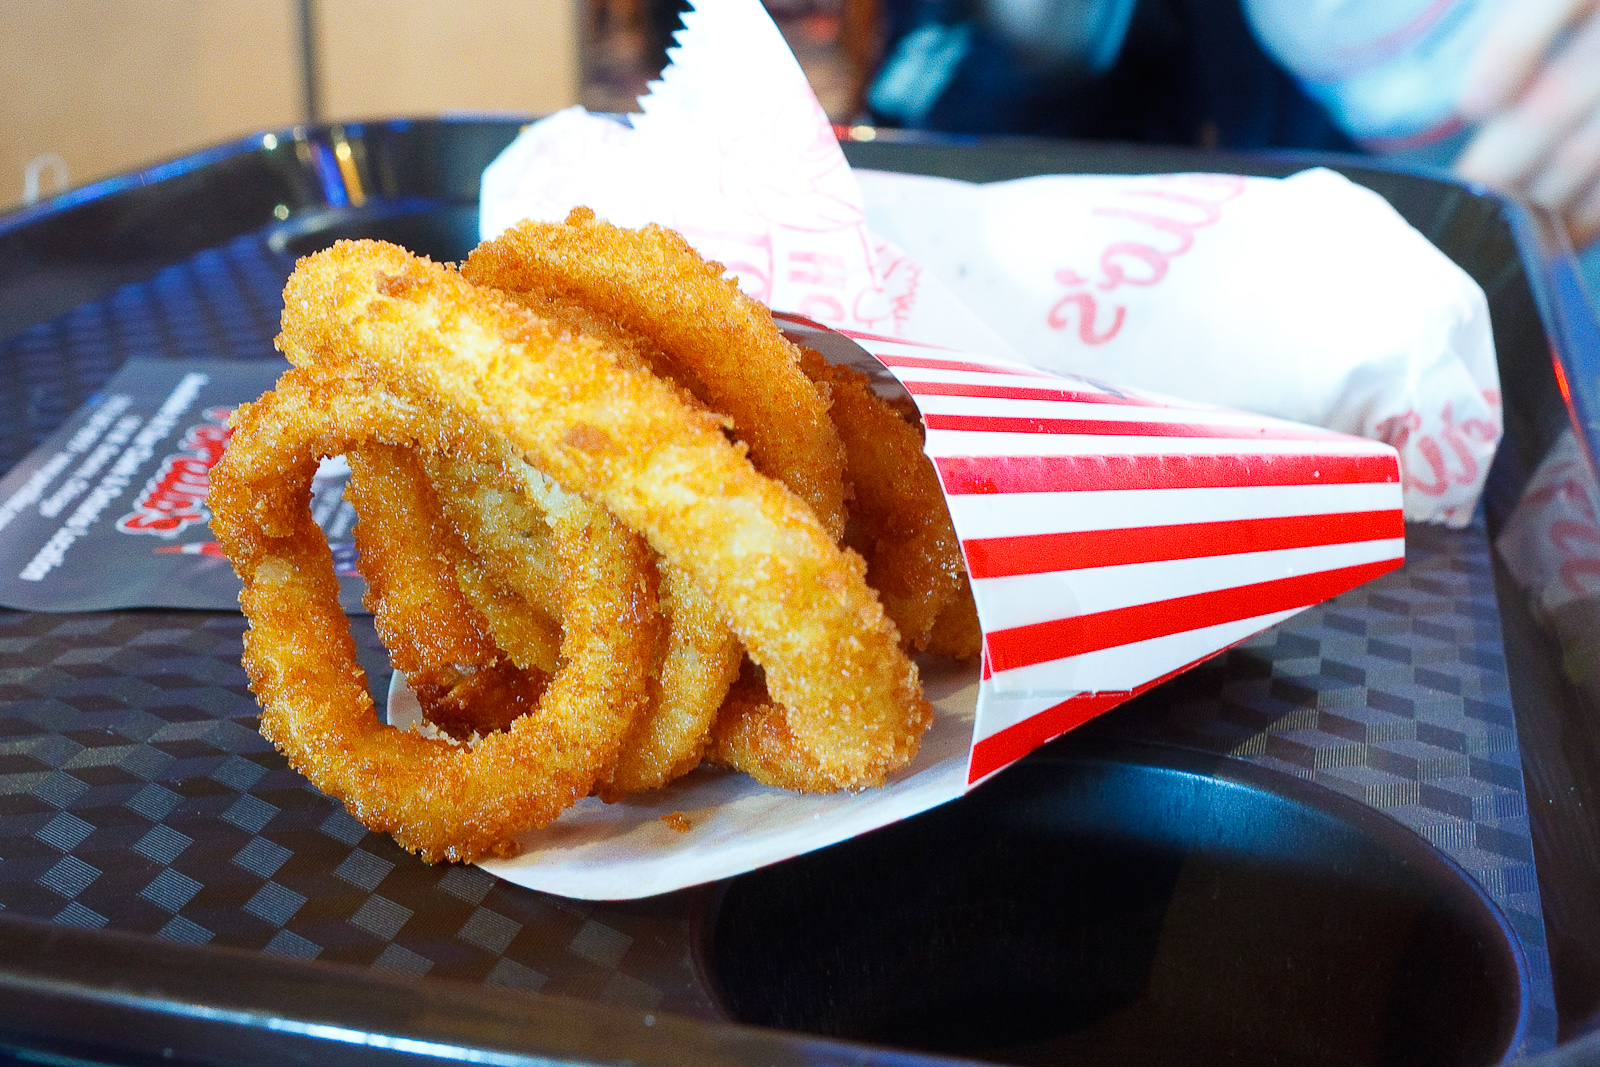 Side of onion rings ($1.99)